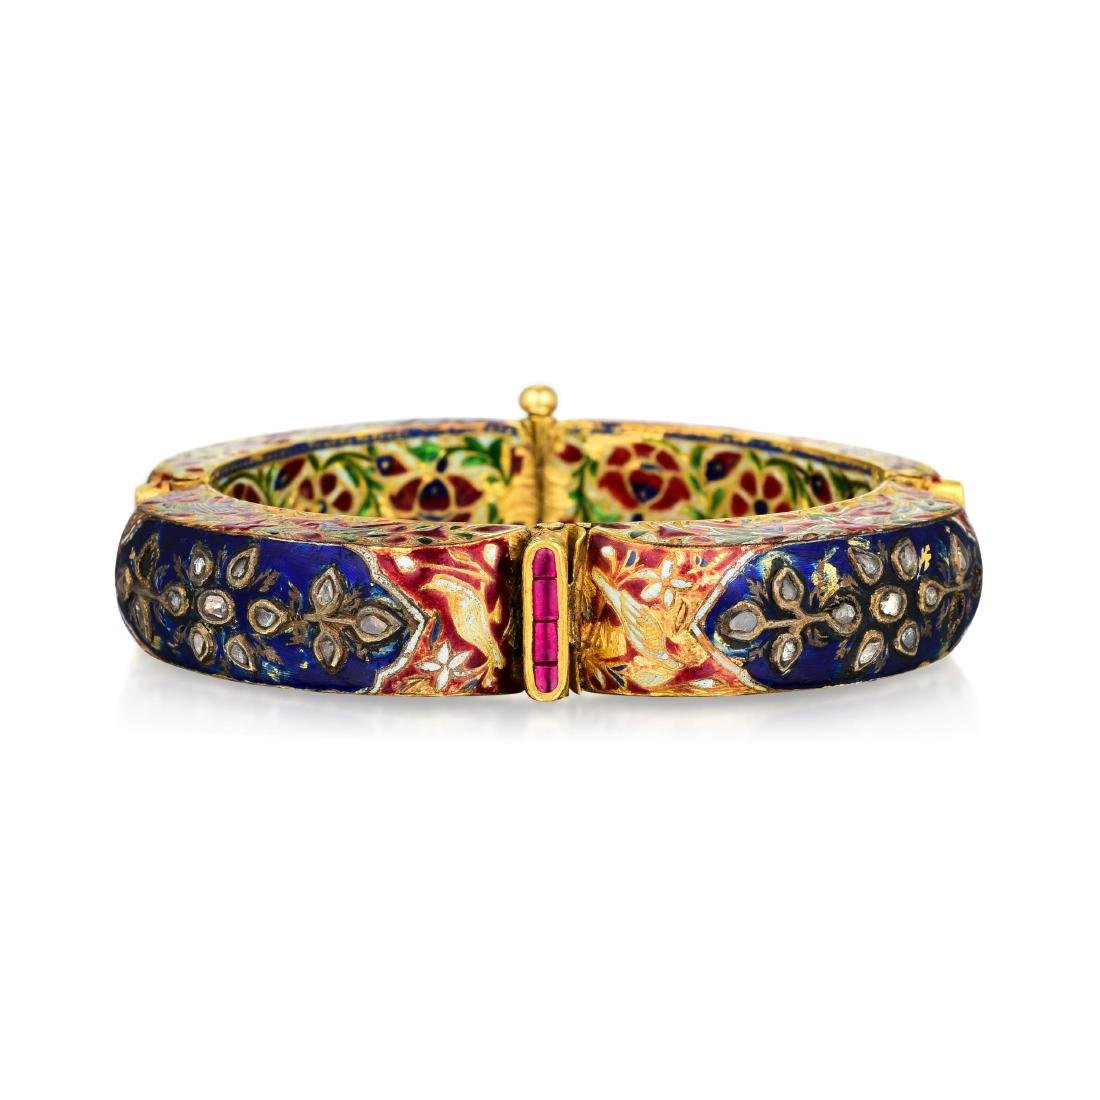 A Group of Indian Jewelry and Enamel Box - 5